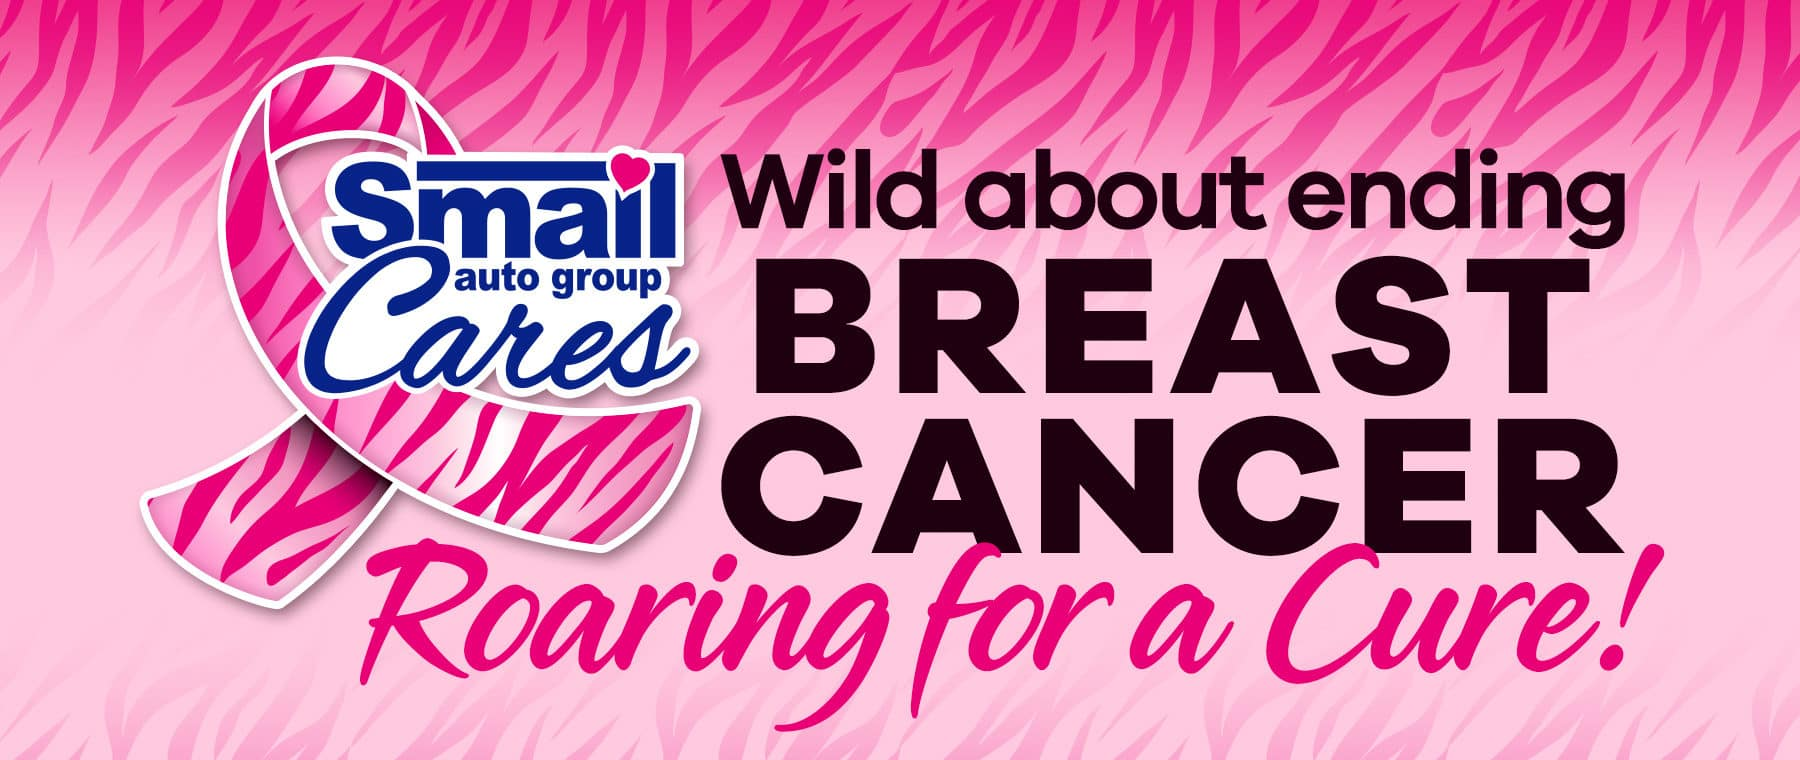 Smail Cares - Roaring for a Cure!